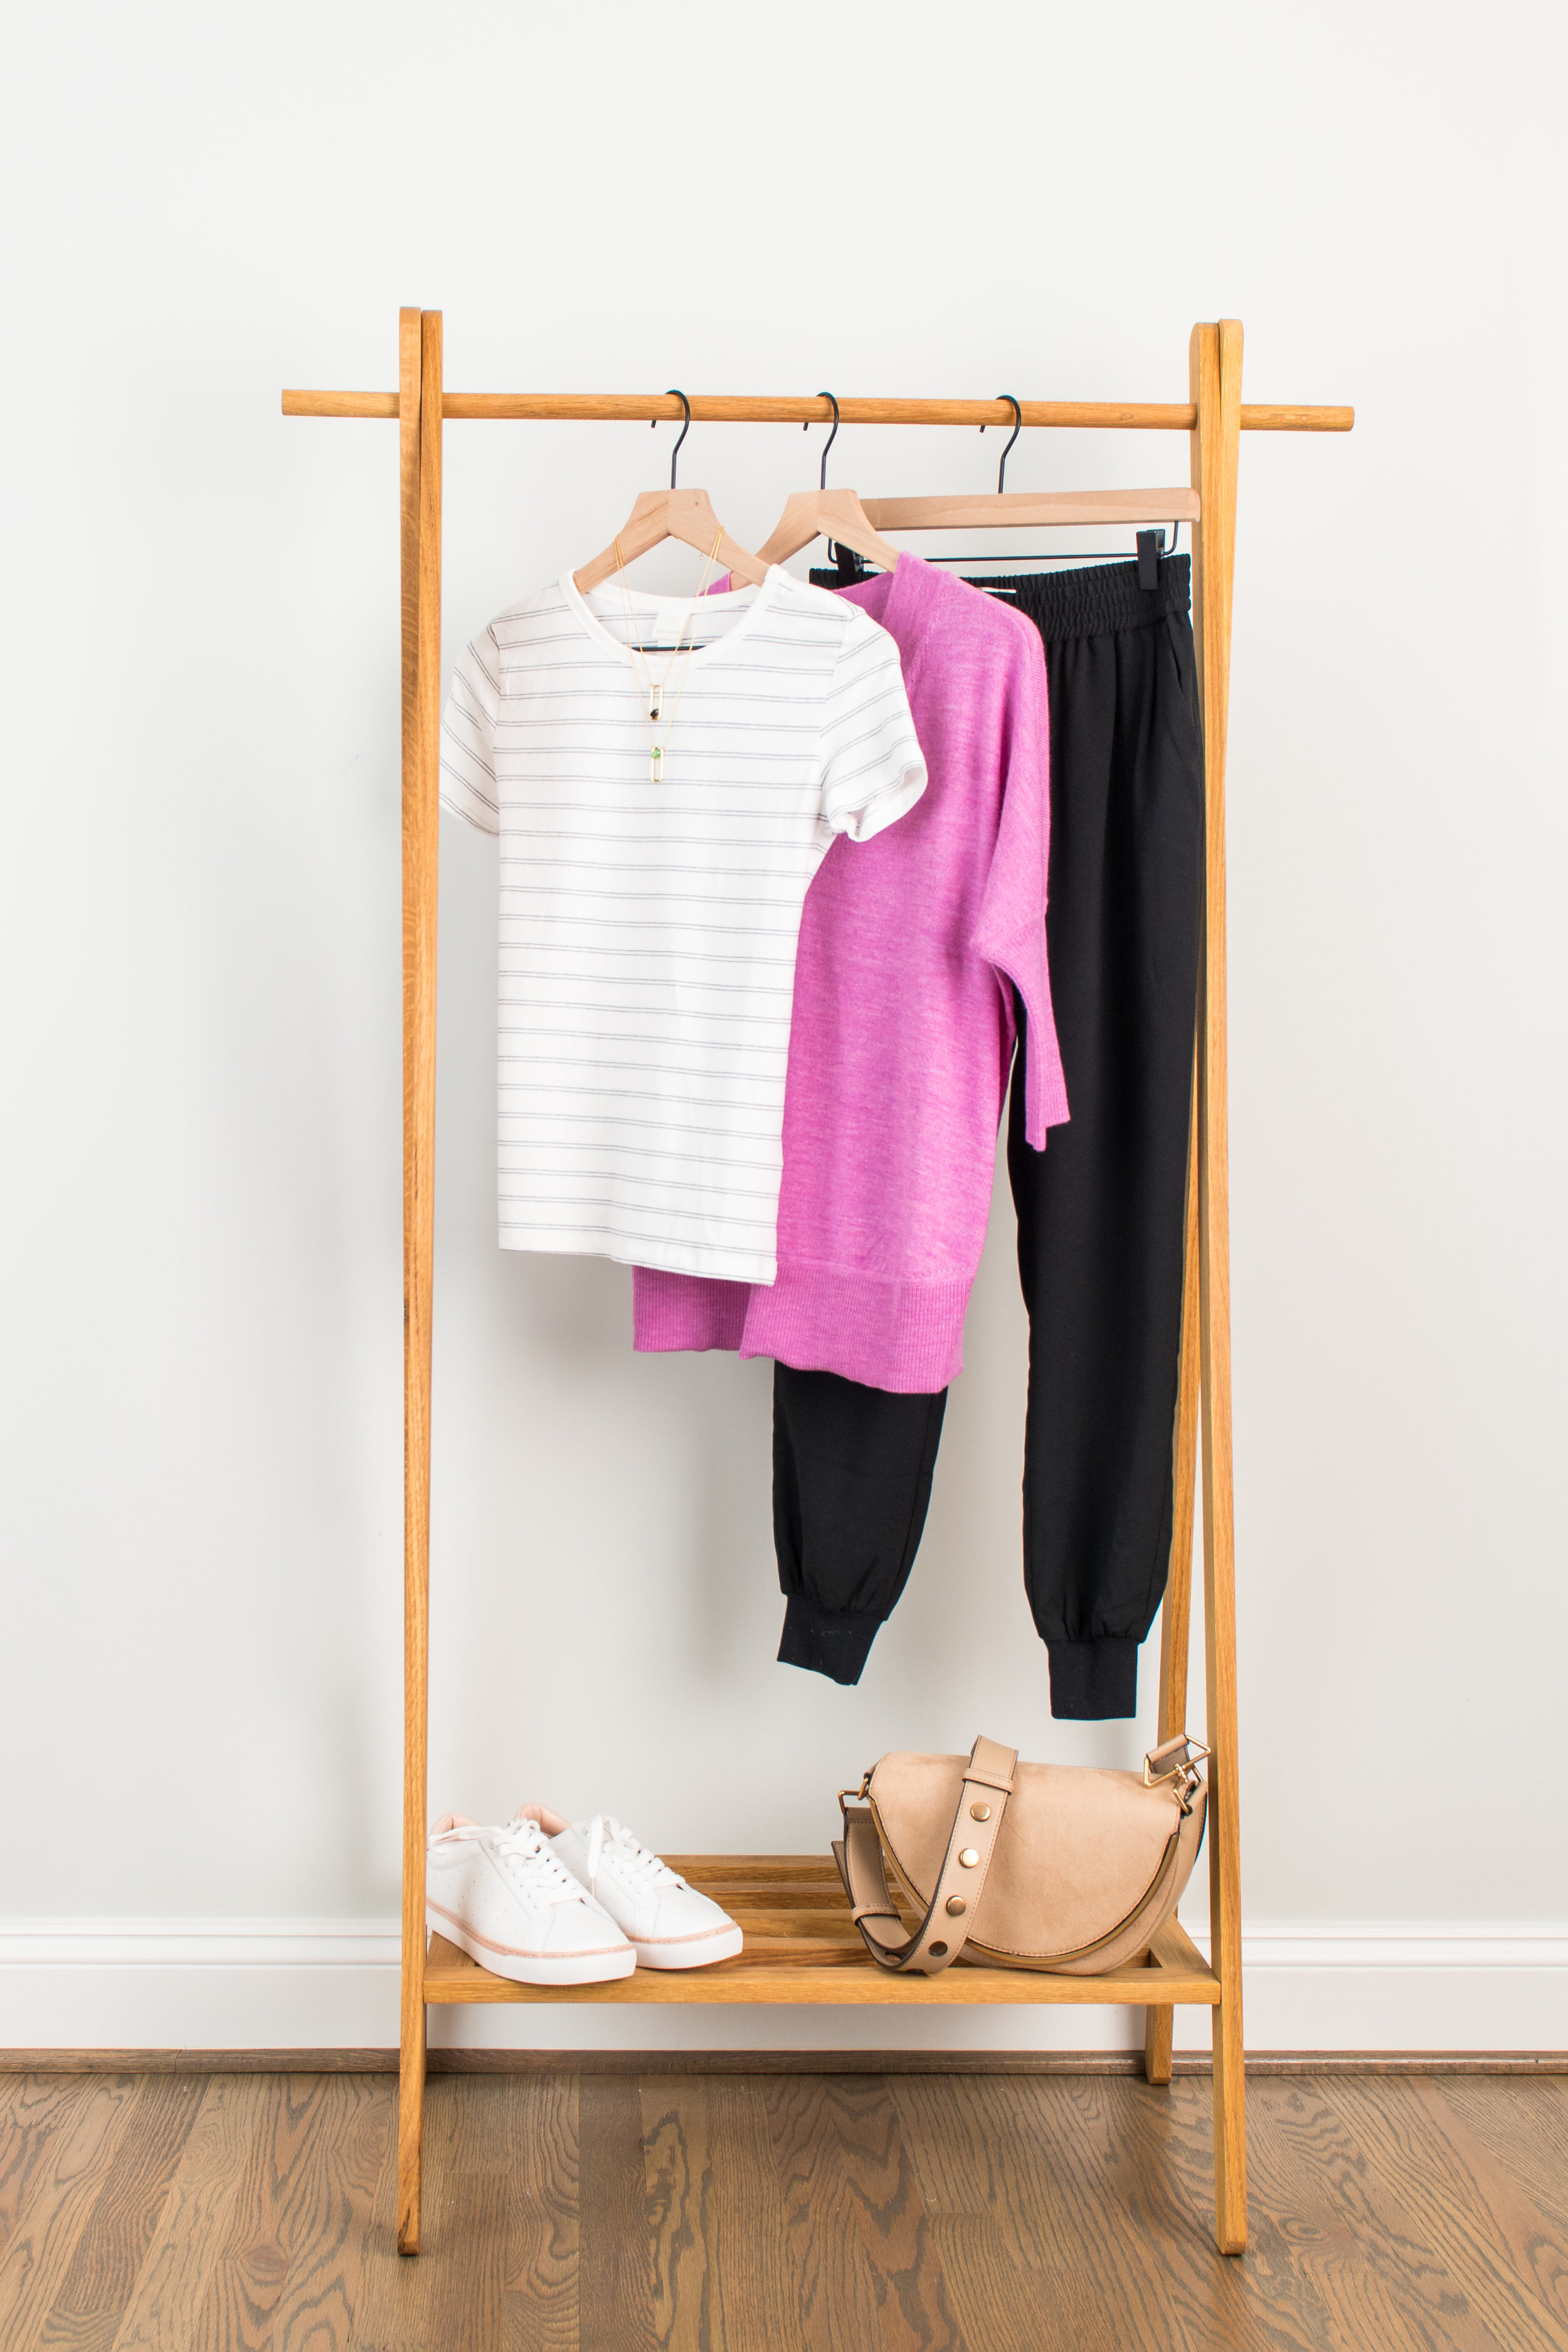 Cuter Than Sweats - Wear to: Running errands or sports eventStriped Tee: 1 // 2 // 3Dressy Jogger: 1 // 2 // 3Pullover Sweater: 1 // 2 // 3Sneakers: 1 // 2 // 3Necklace: 1 // 2 // 3Bag : 1 // 2 // 3